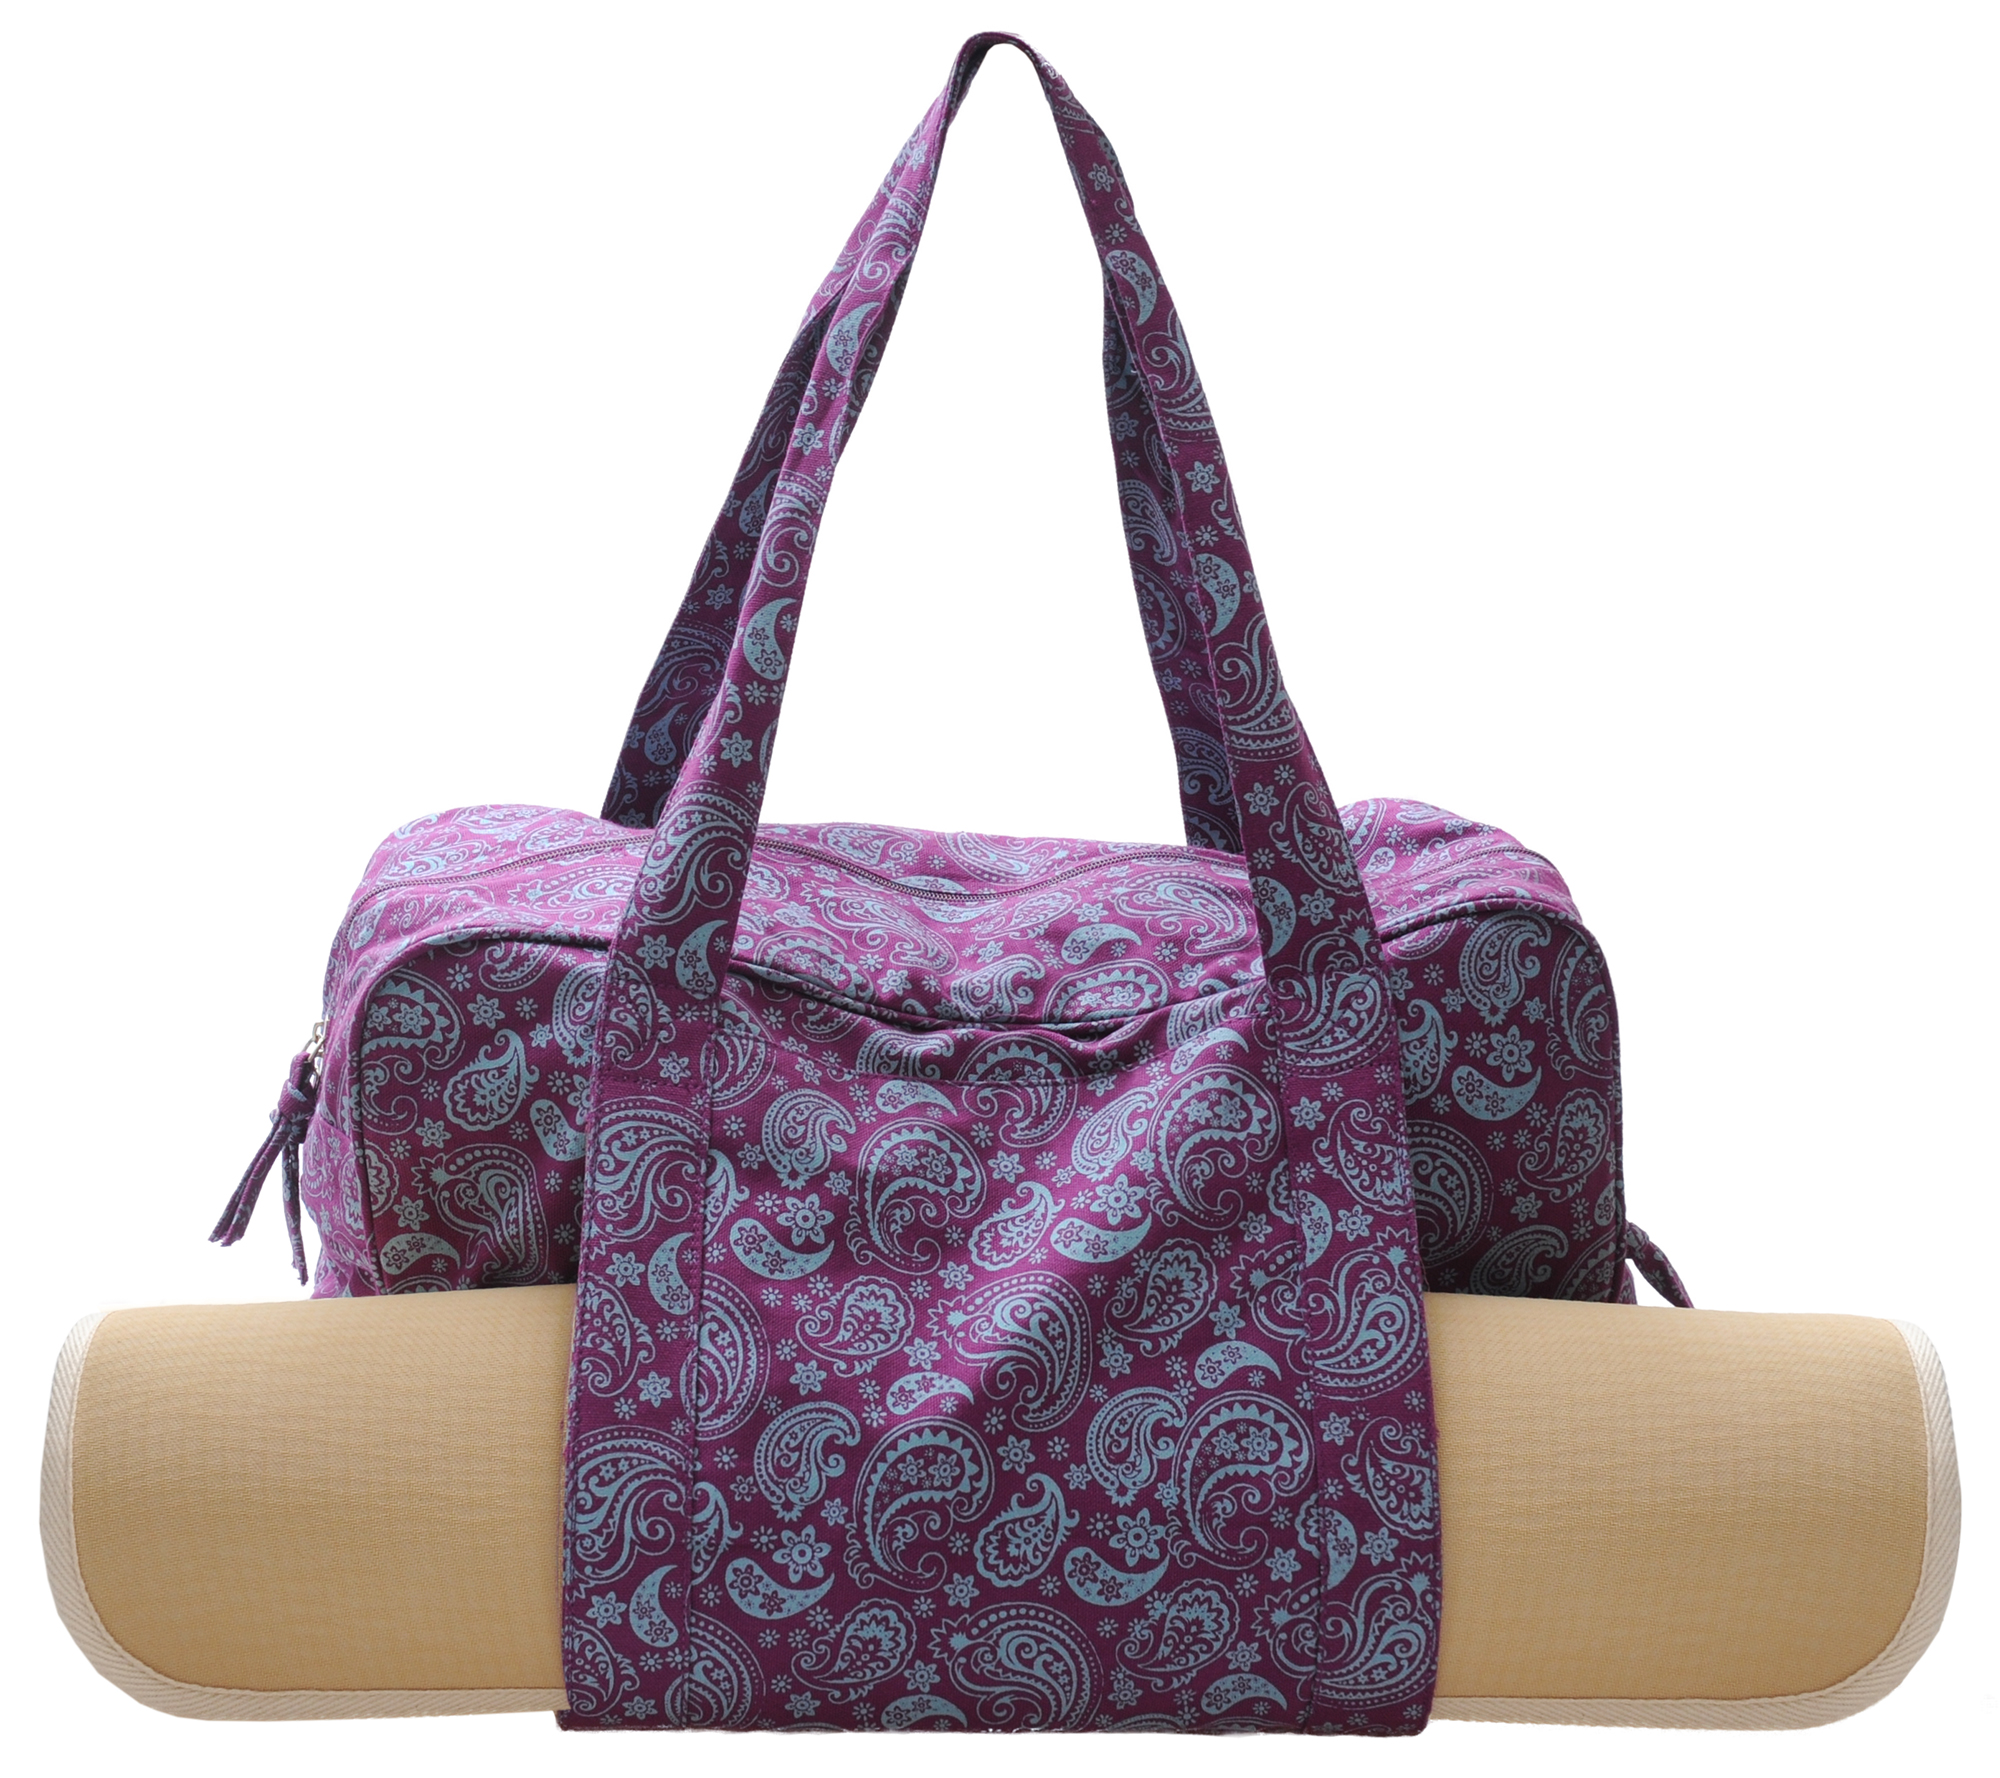 Yogatasche twin bag - take me two